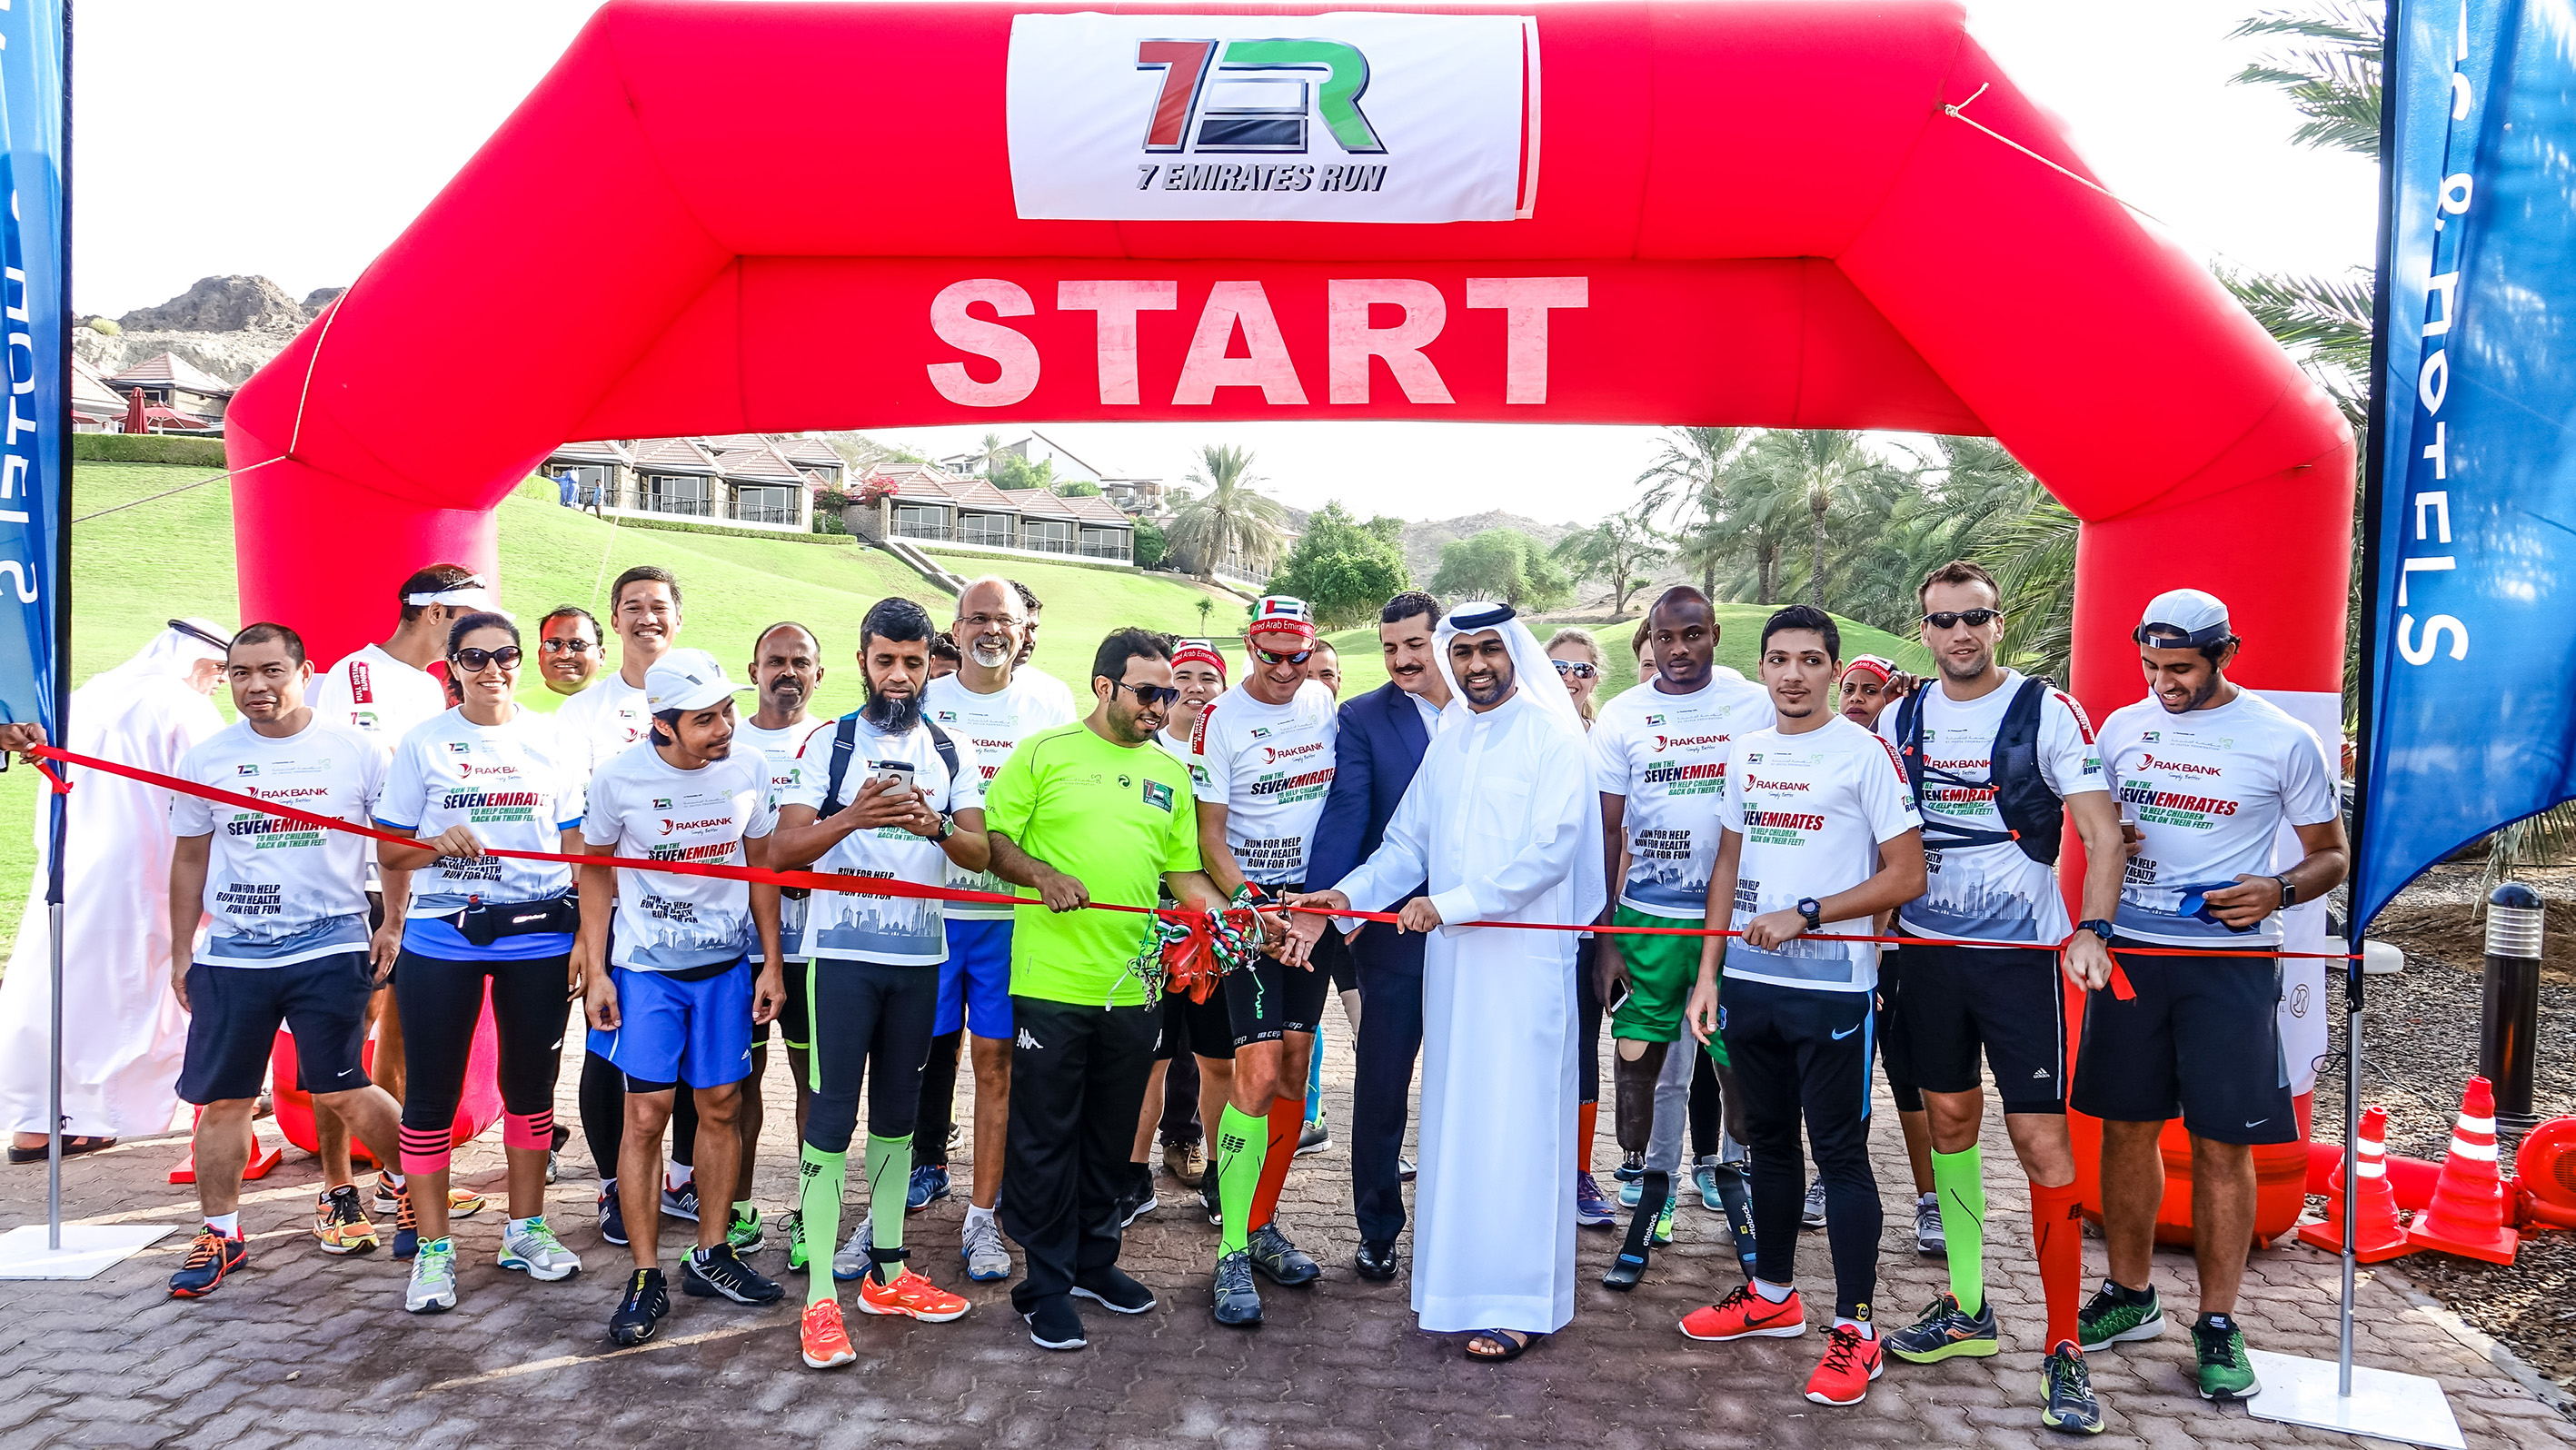 7EmiratesRun in partnership with Al Jalila Foundation kicks off in Hatta today to 'get children back on their feet'